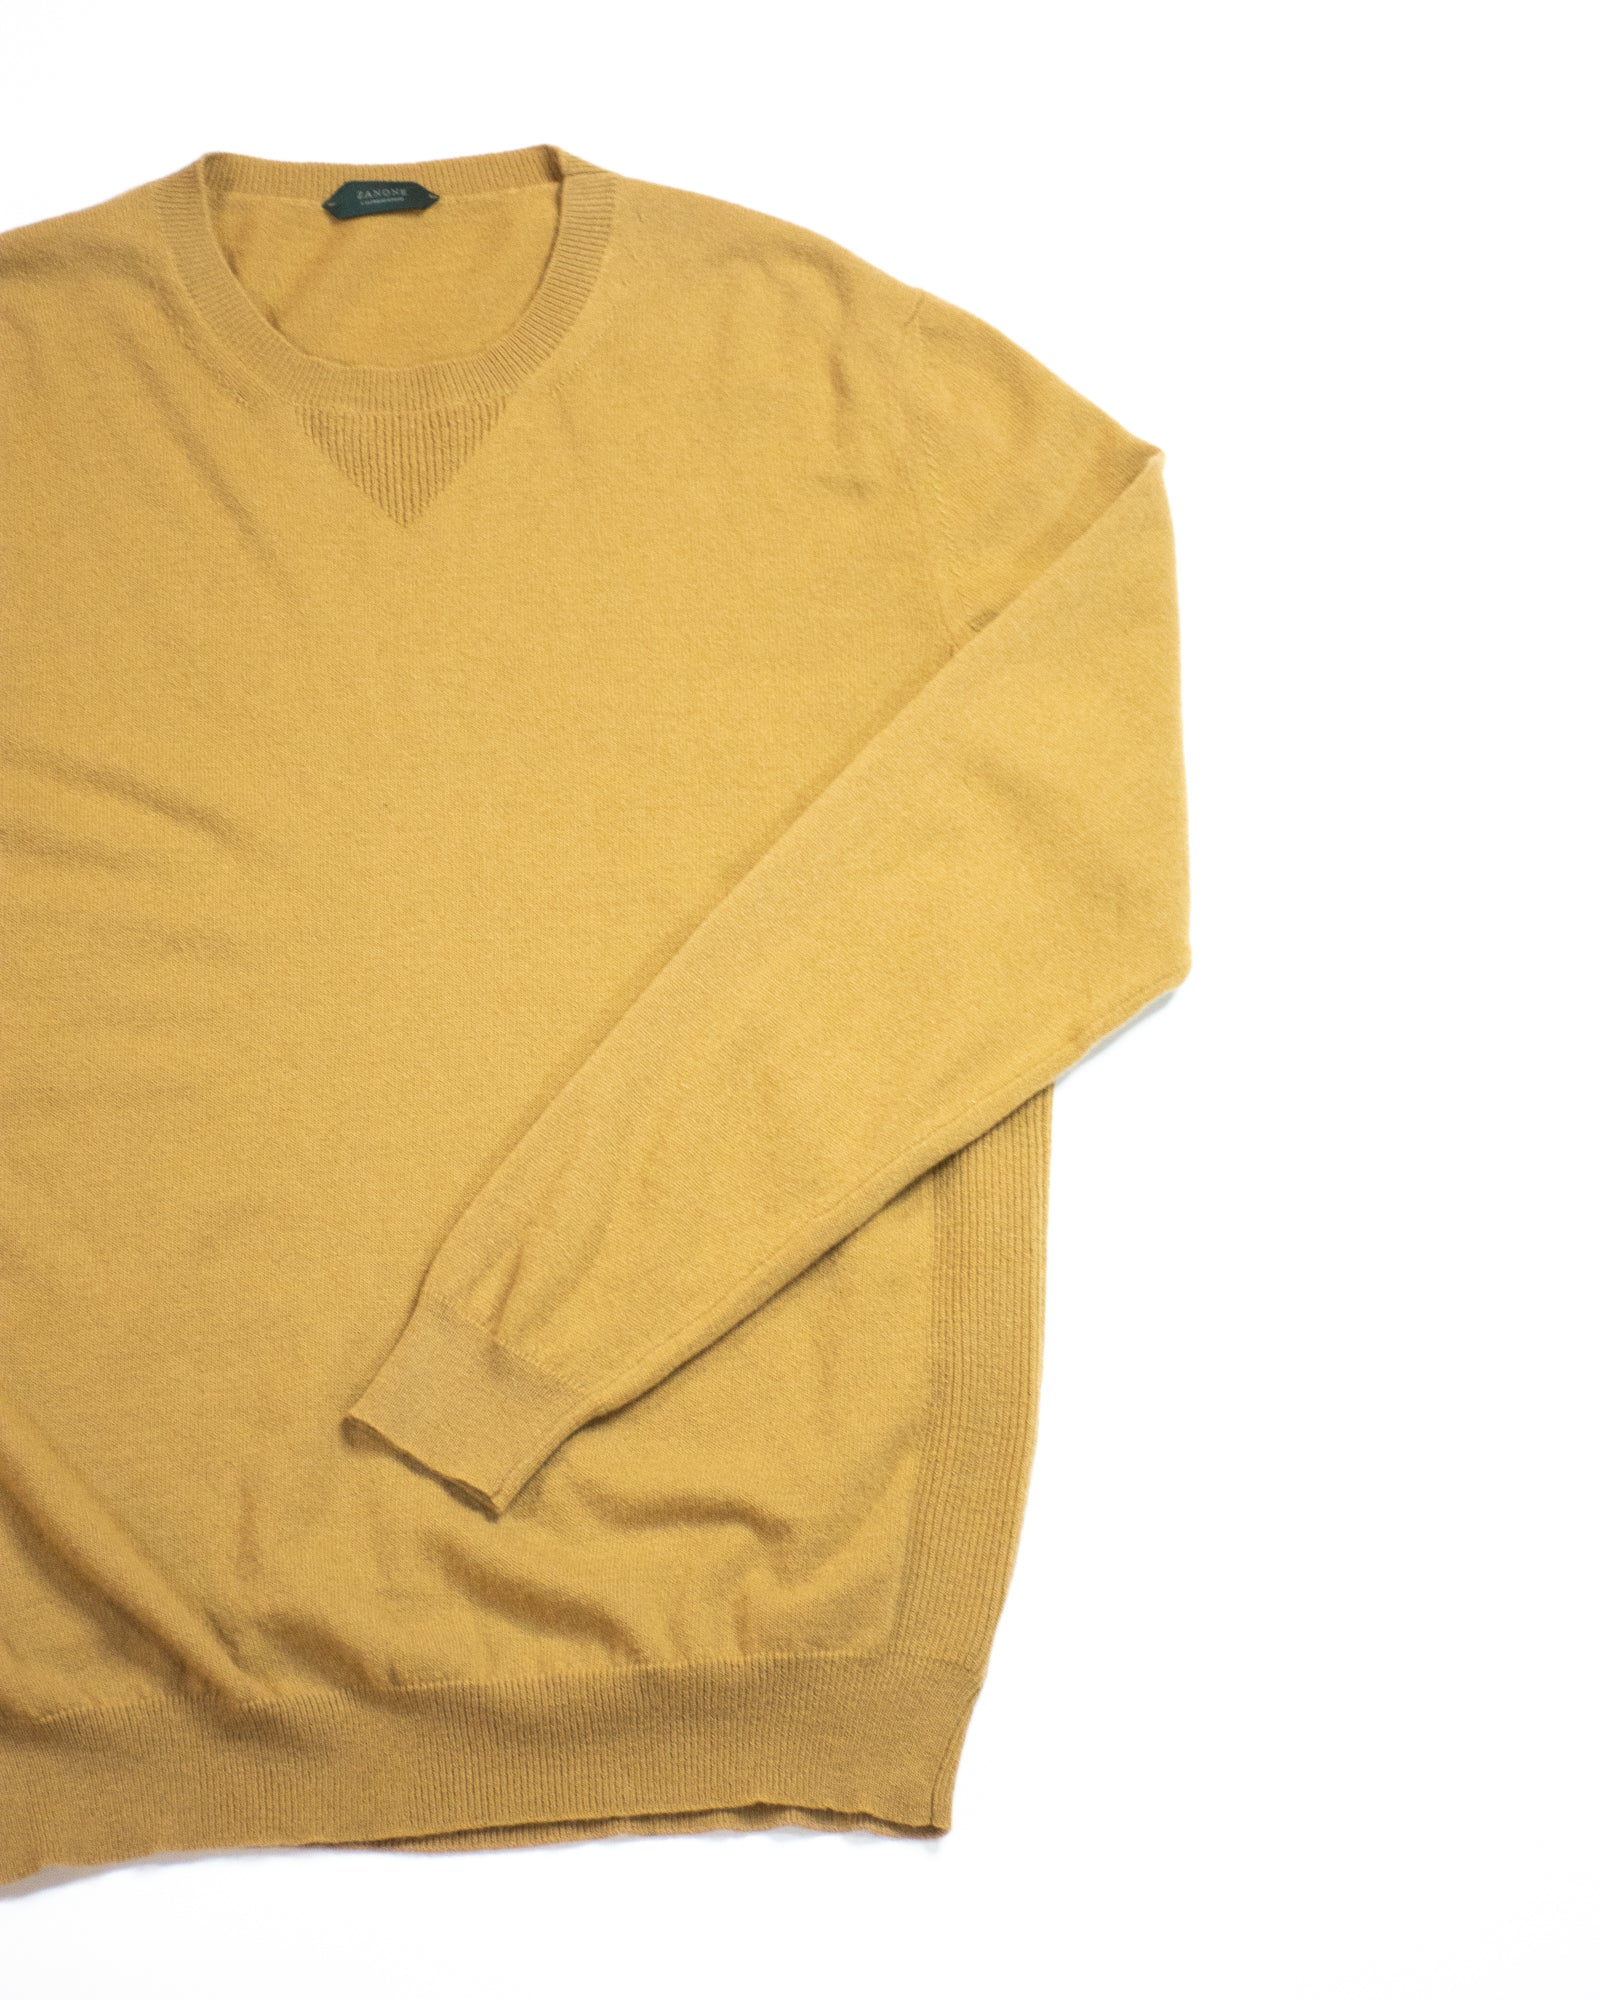 SLOWEAR Crew Neck Knit Sweatshirt